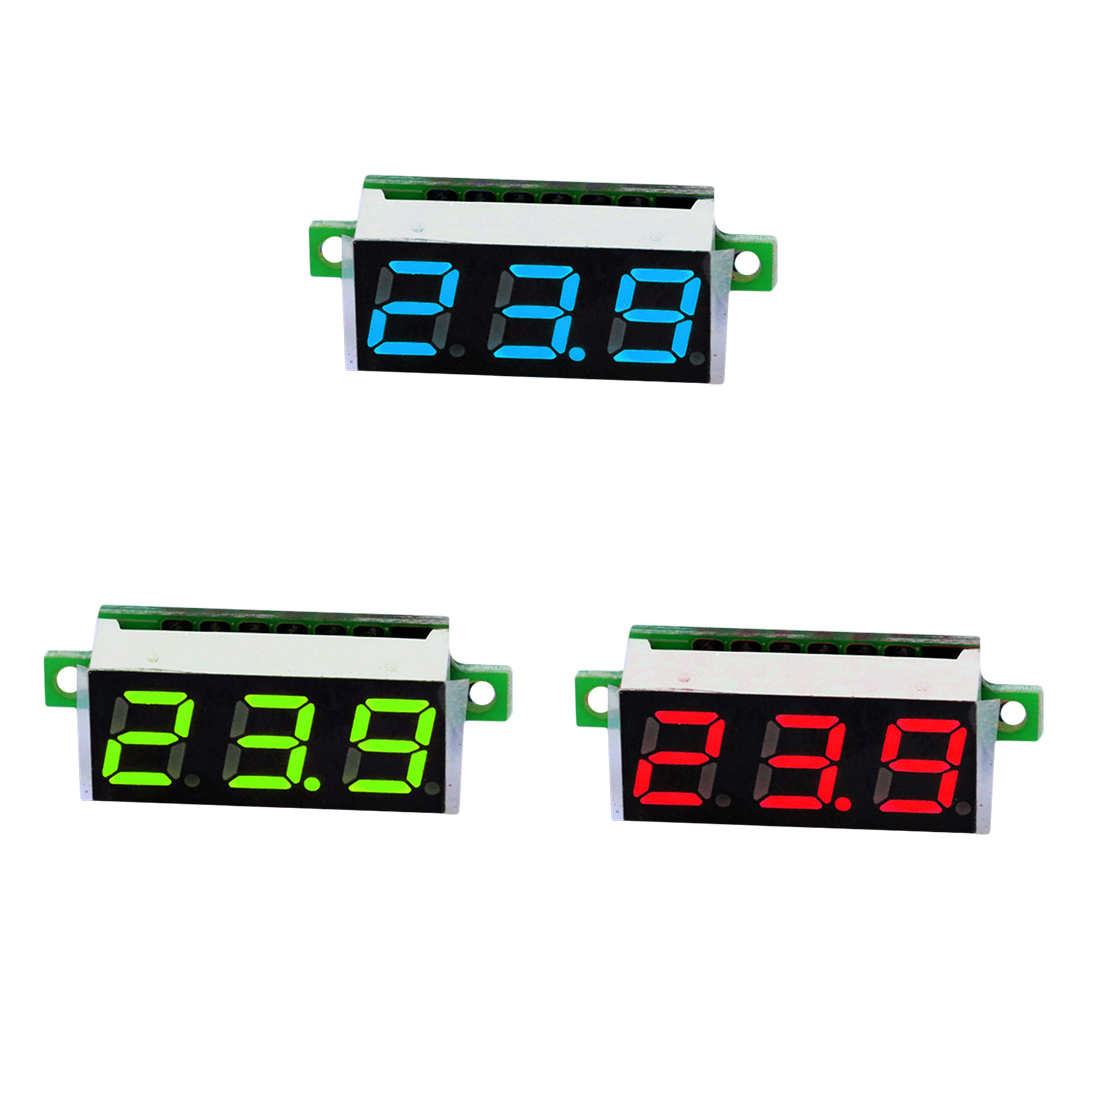 Pro 0.28 Inch 2.5V-30V Mini Digital Voltmeter Voltage Tester Meter LED Screen Electronic Parts Accessories Digital Voltmeter штатив slik mini pro v